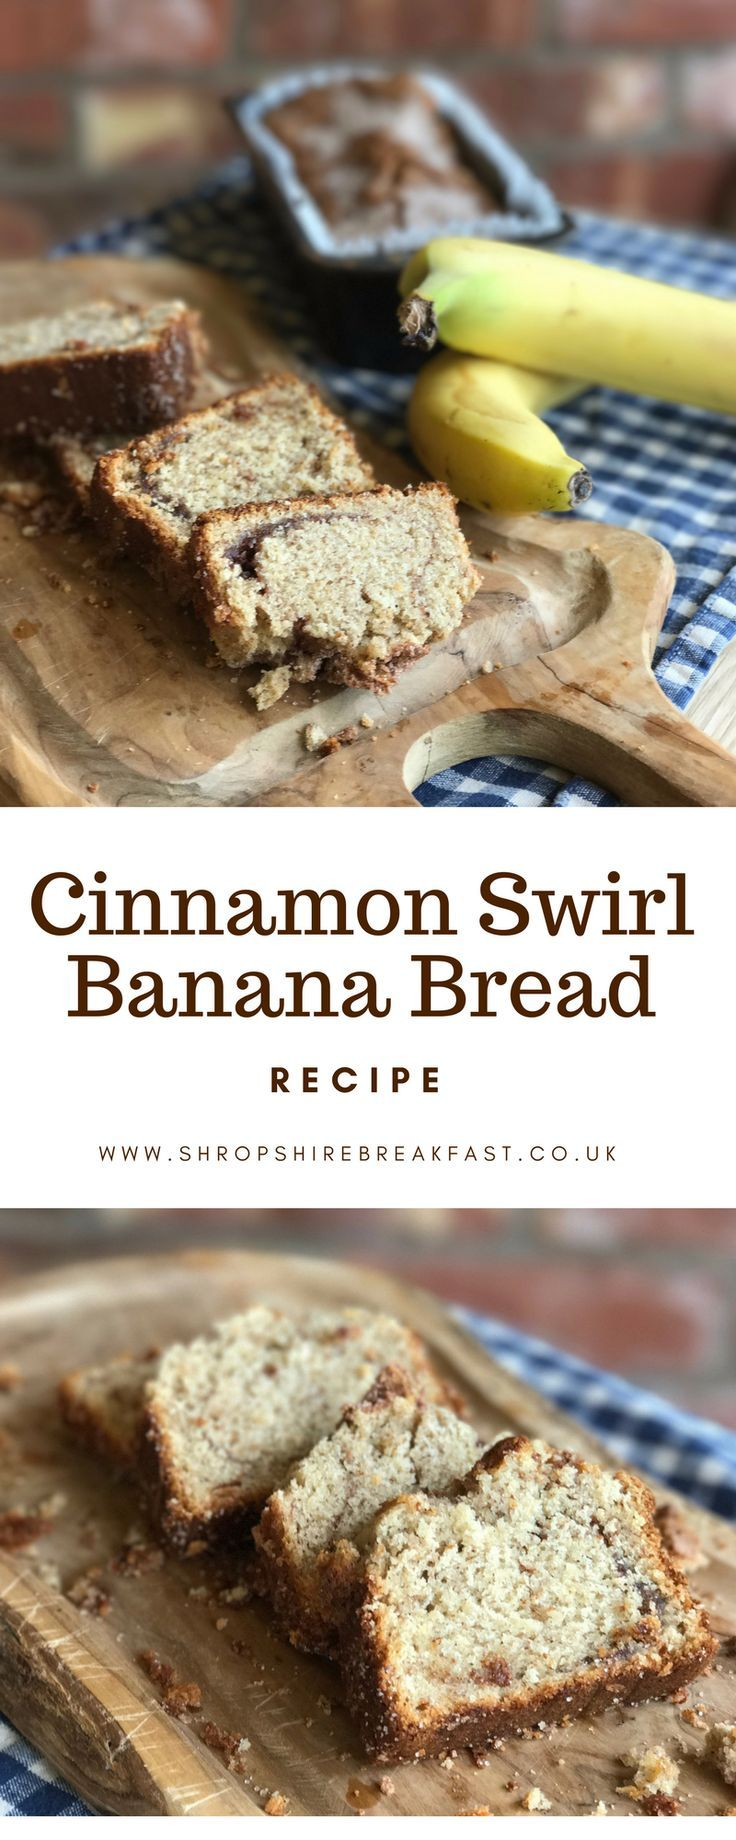 An easy cinnamon swirl banana bread recipe. It's moist and delicious and easy to adapt to make it gluten free or with no refined sugar #easy #recipe